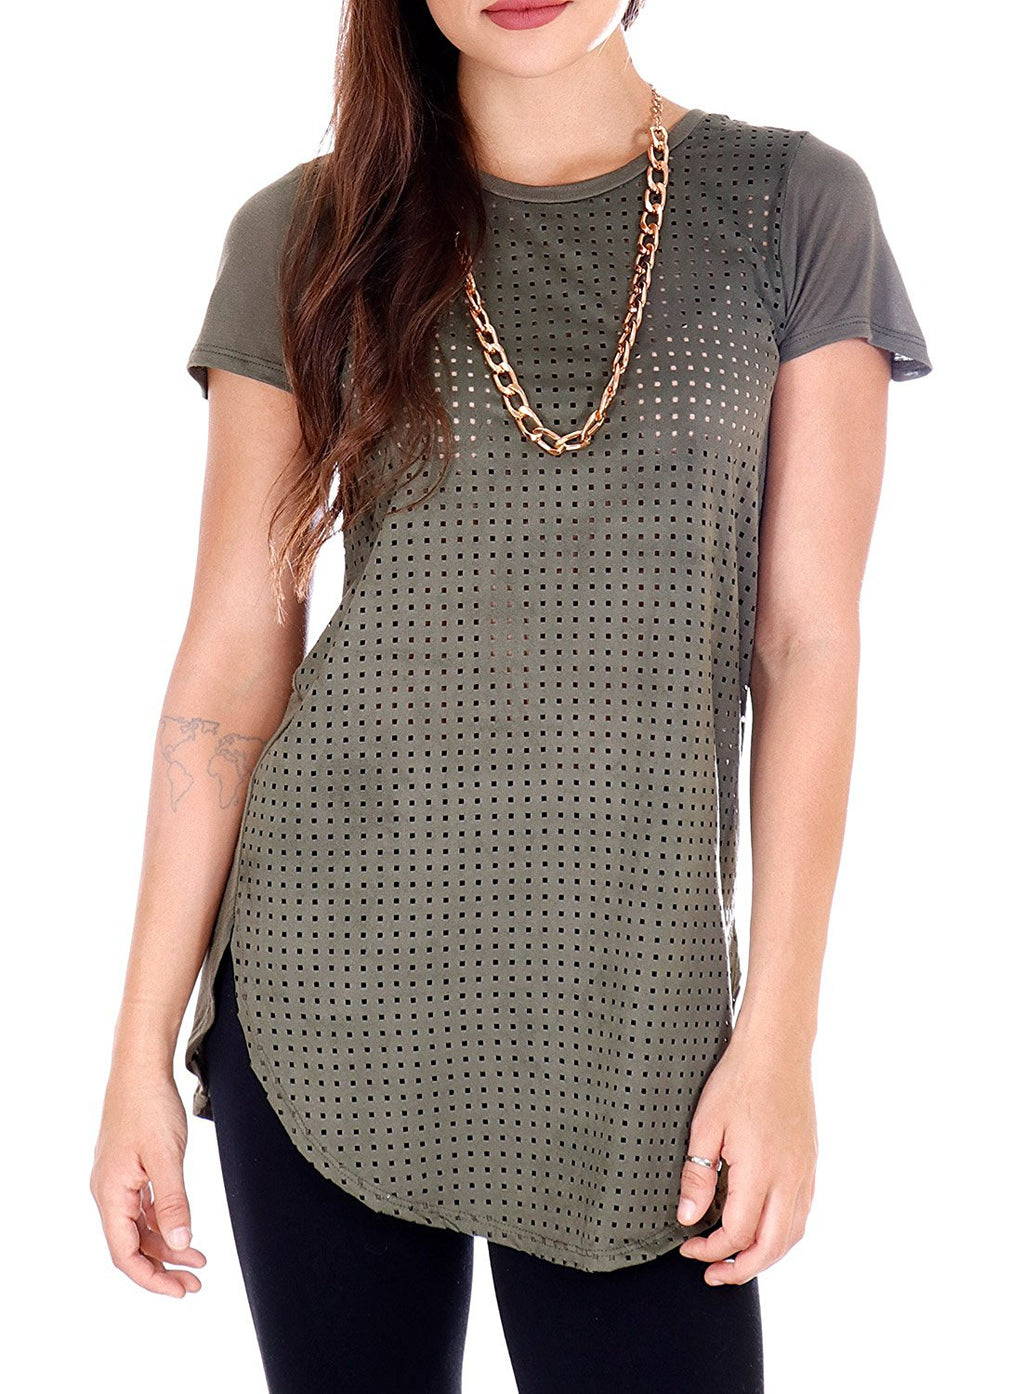 Laser Cut Faux Suede Short Sleeve T-Shirt with Rose Gold Chain Necklace (Olive Green)